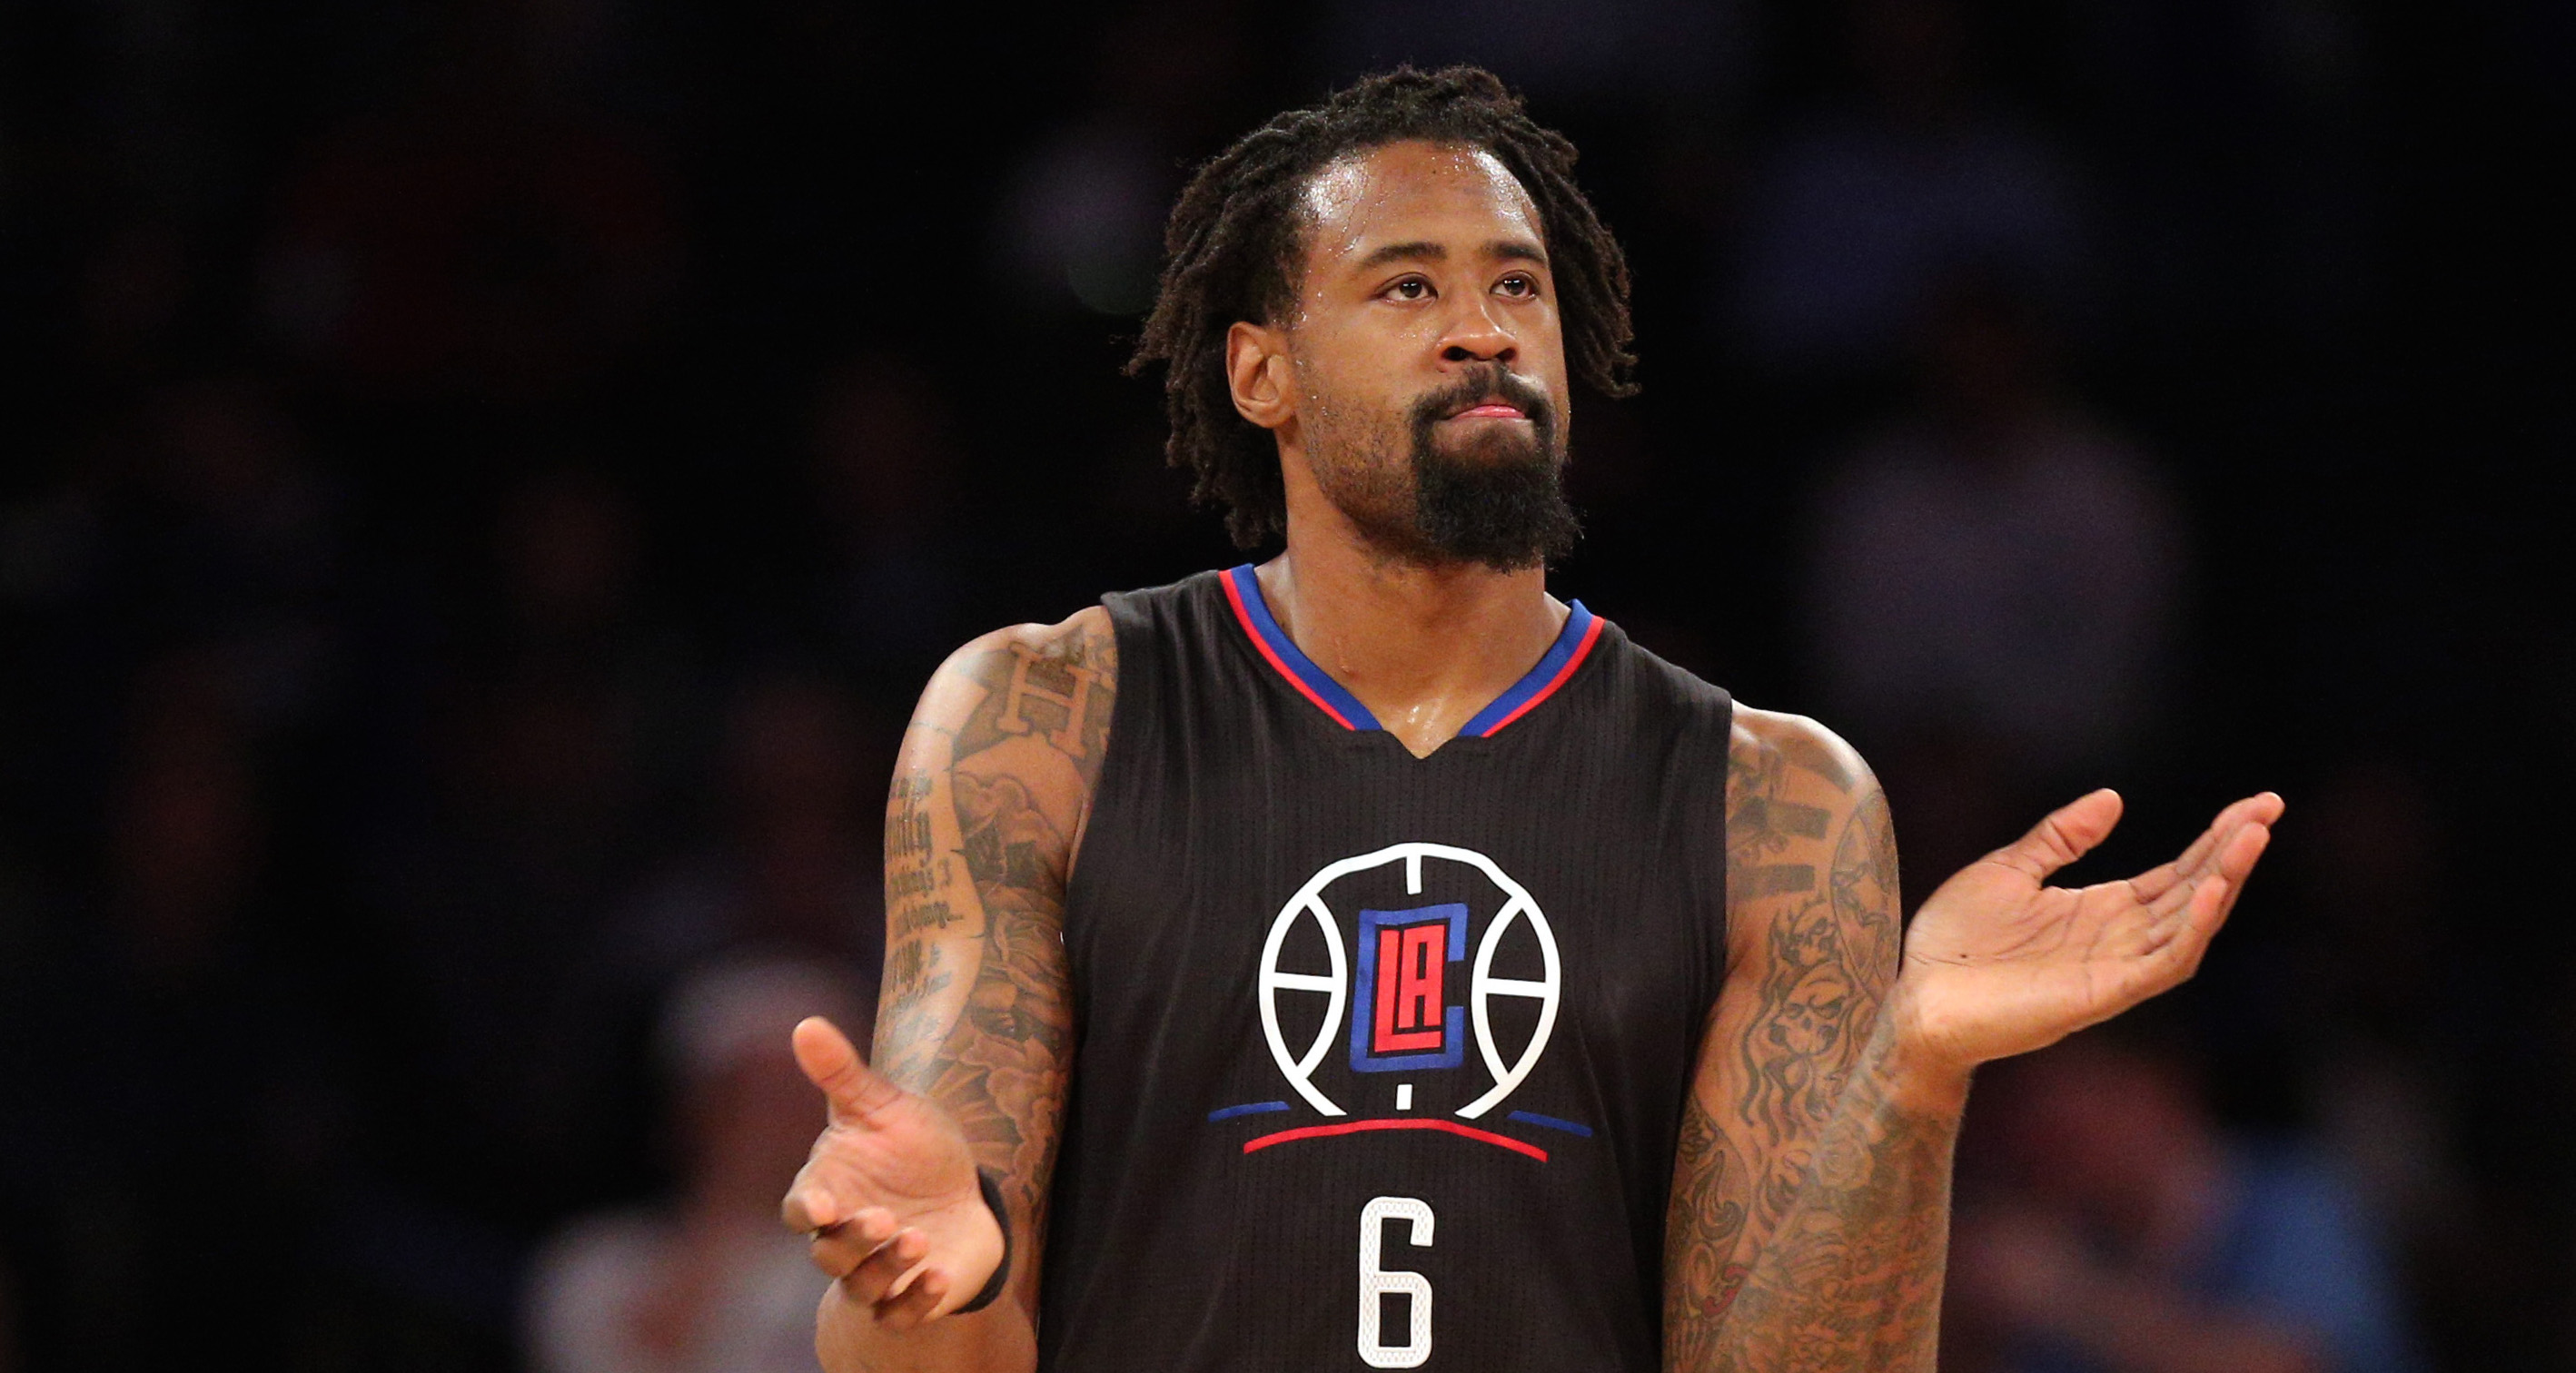 Should players be allowed to use wearable health-monitoring devices in NBA games?